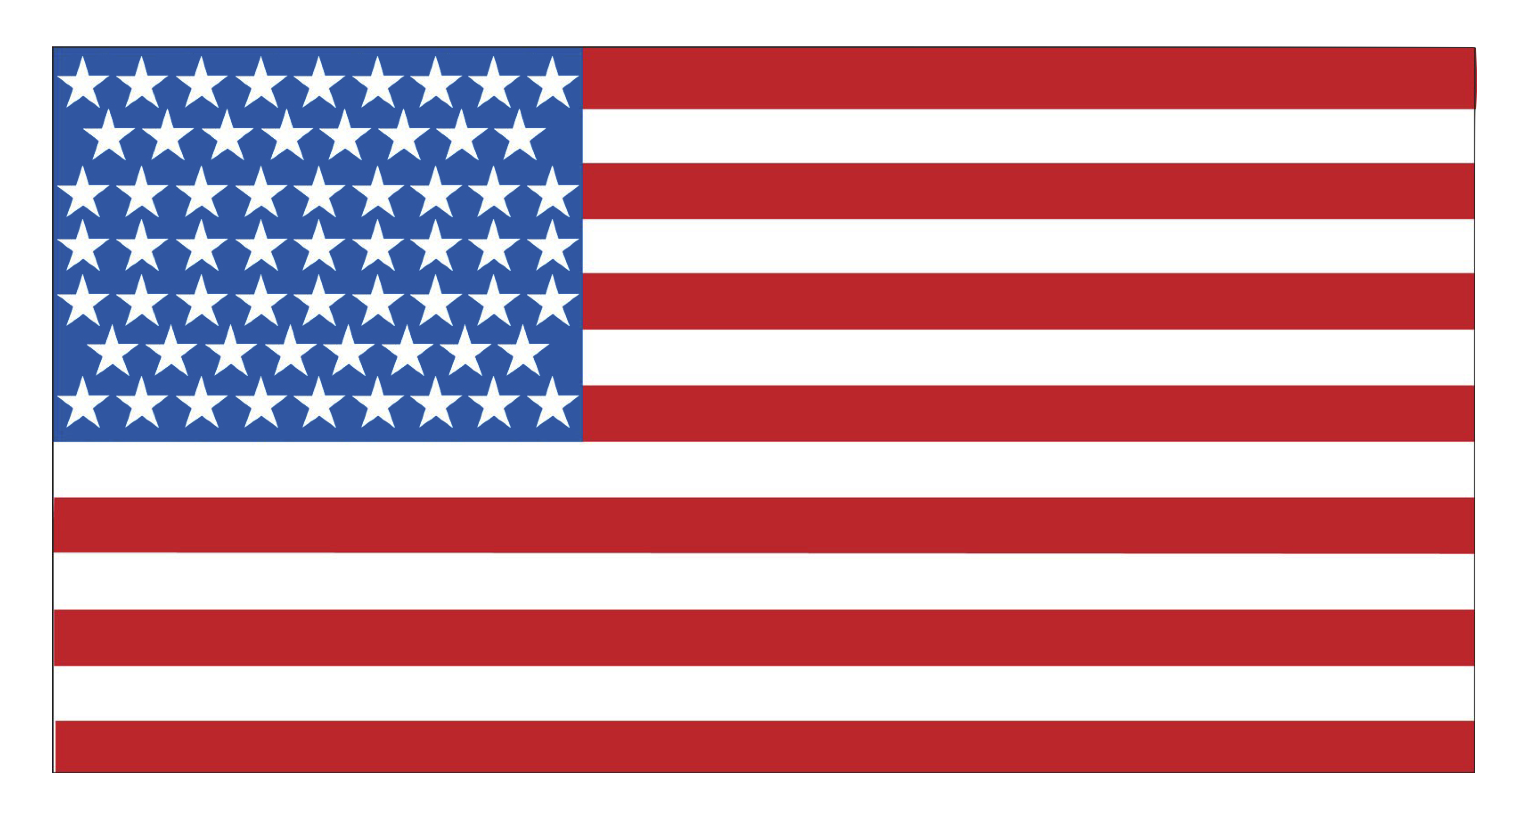 Purchase and Learn About the American Flag from US Flags